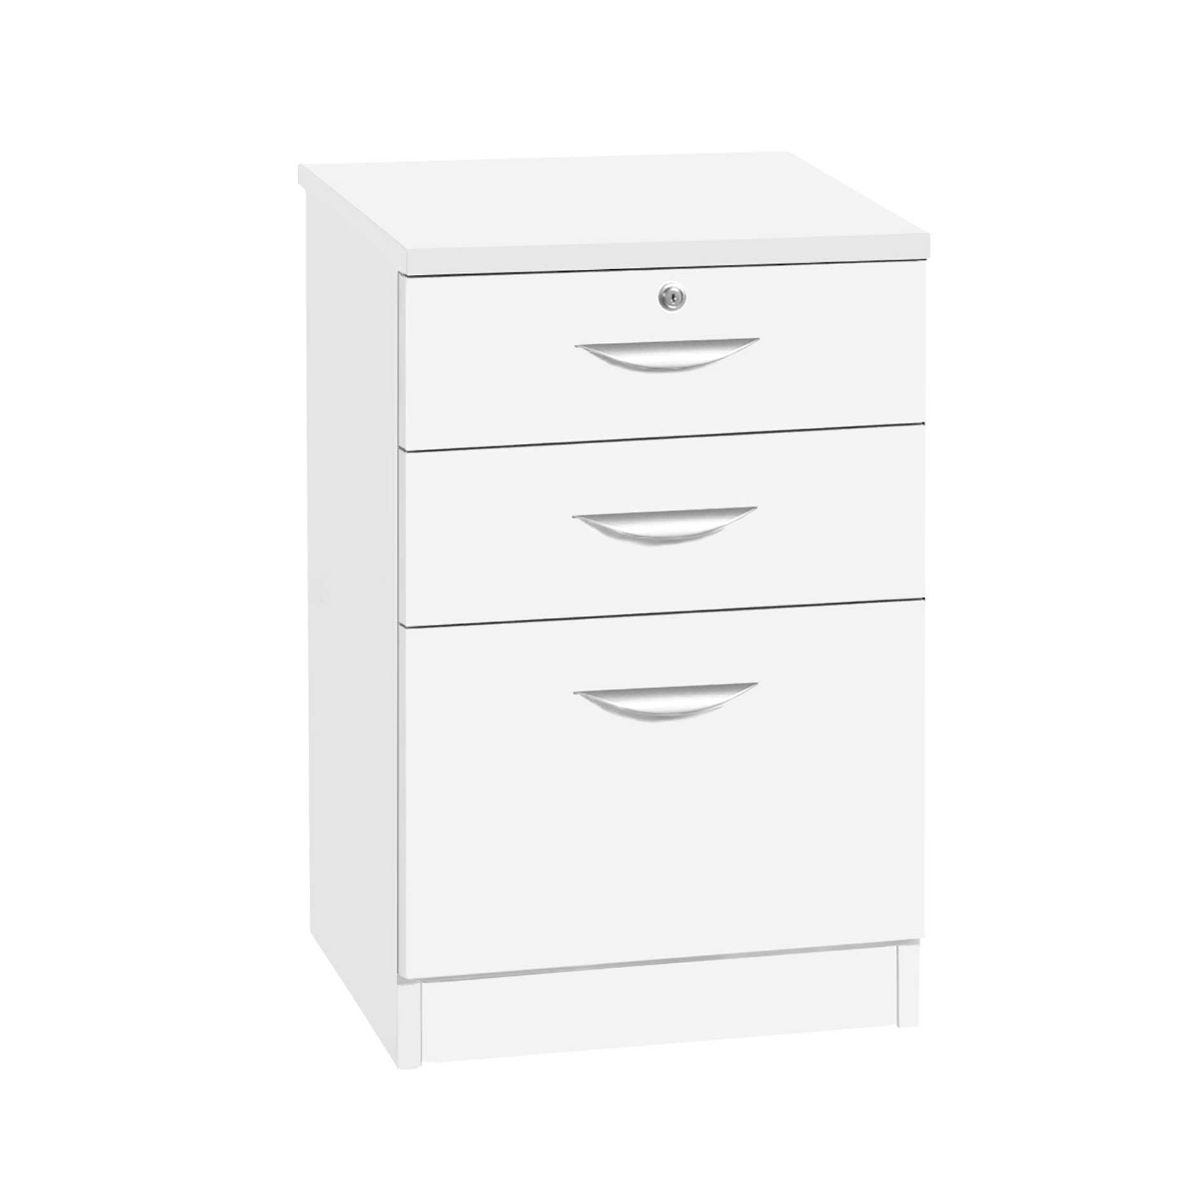 R White 3 Drawer Unit Filing Cabinet, White Satin